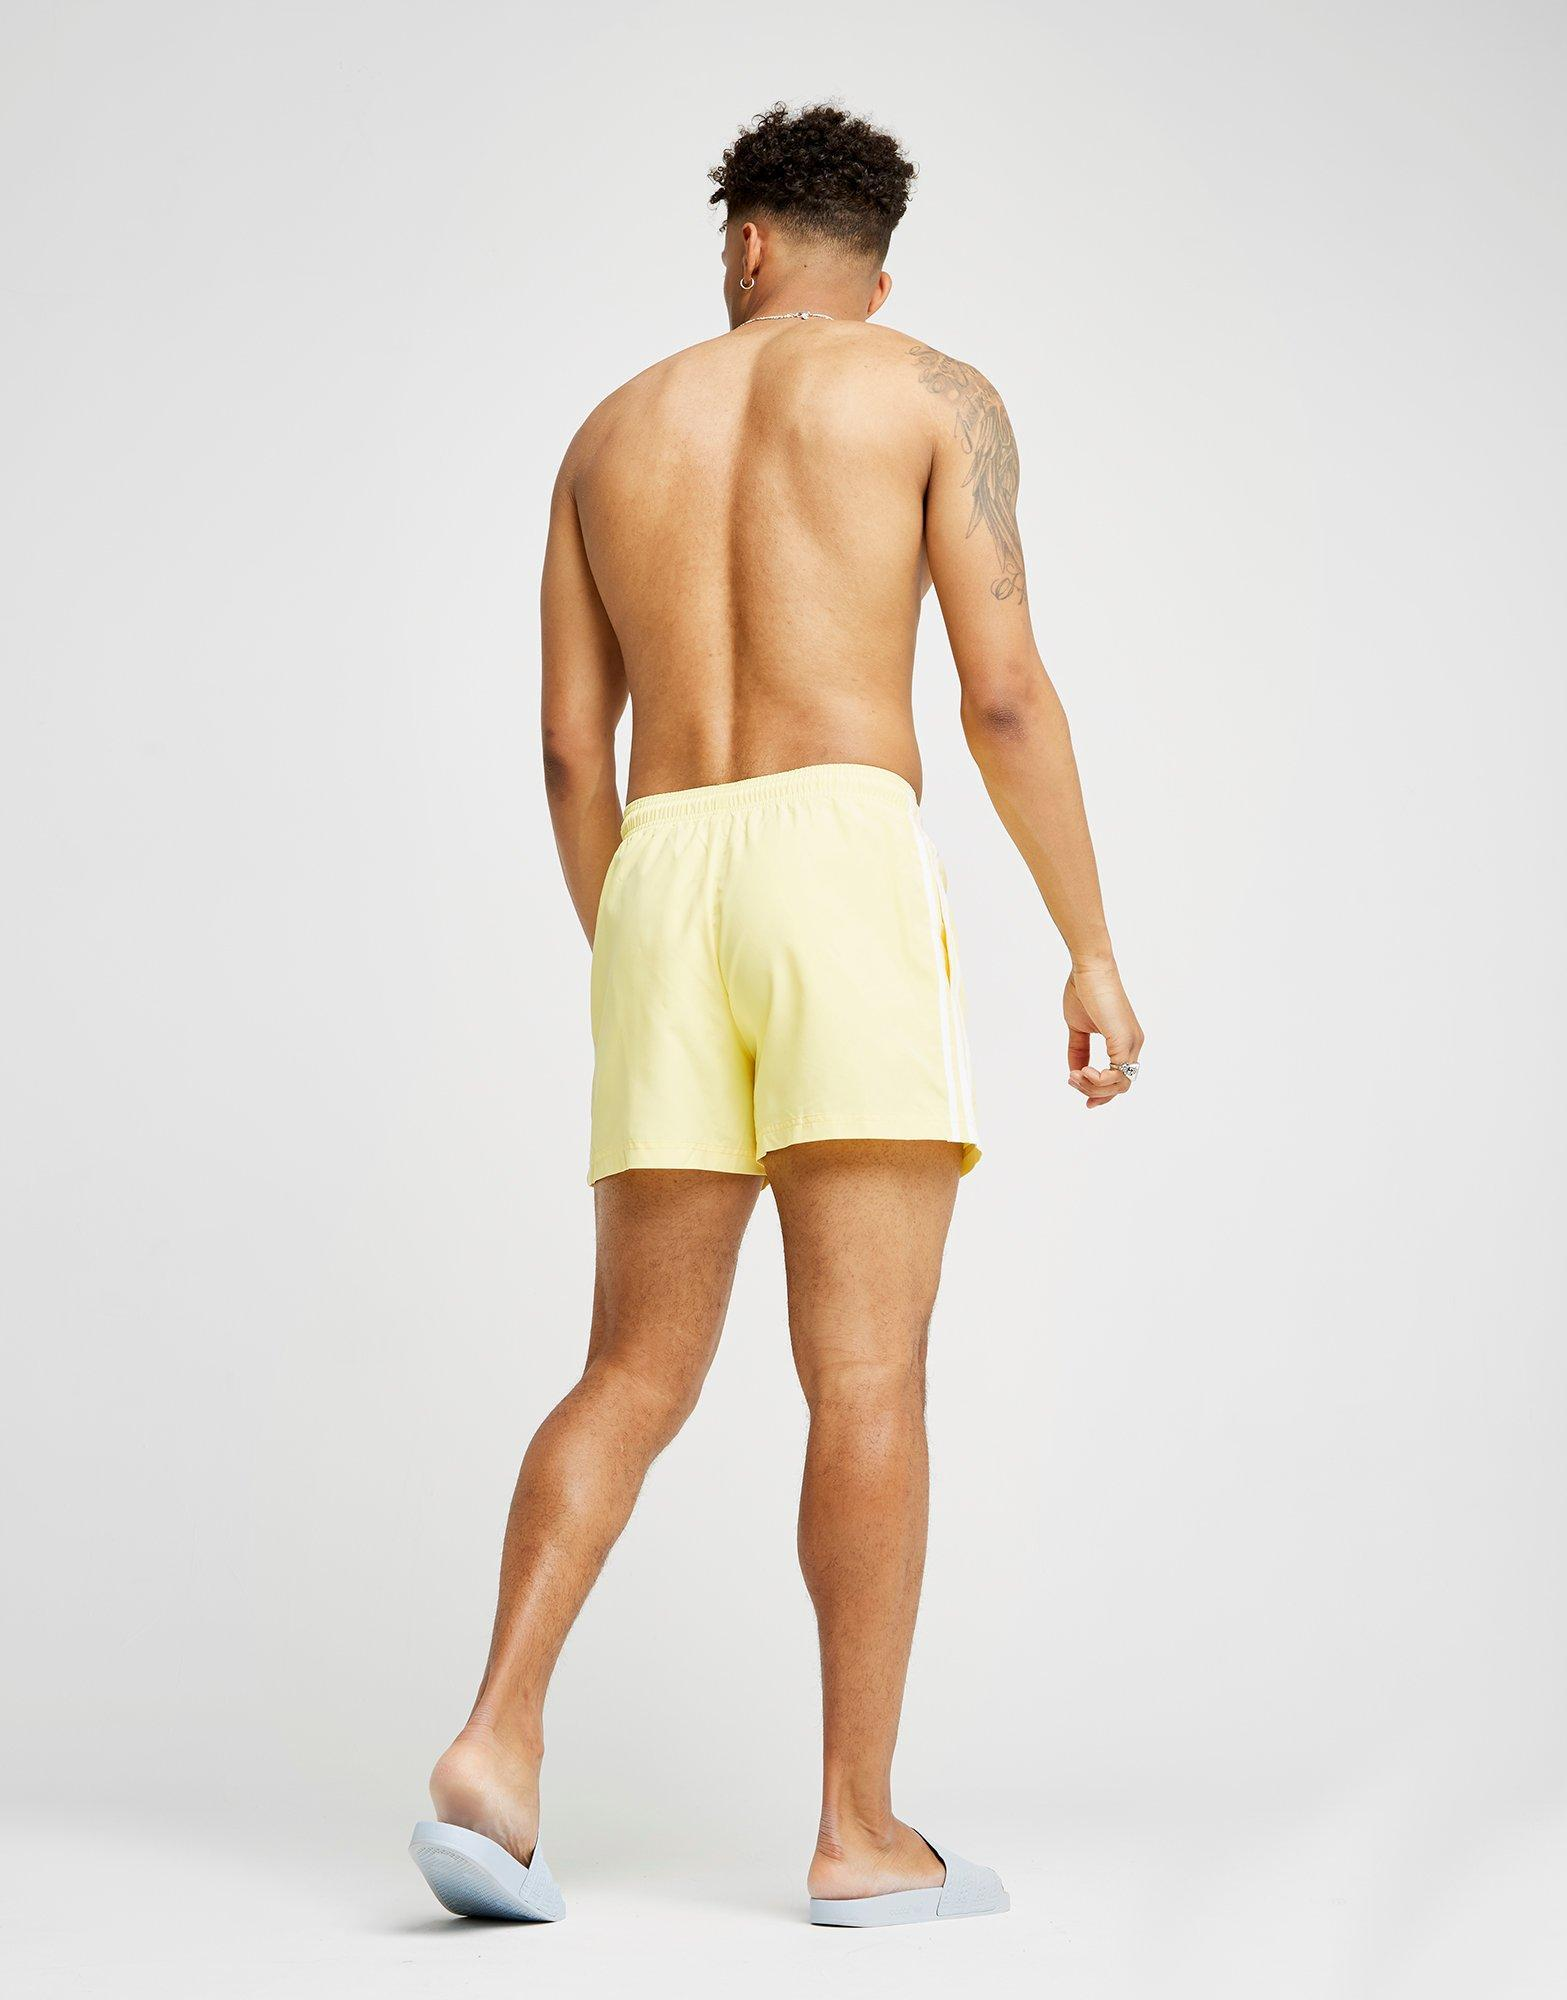 6147bb5b41ea5 adidas Originals California Swimshorts in Yellow for Men - Lyst